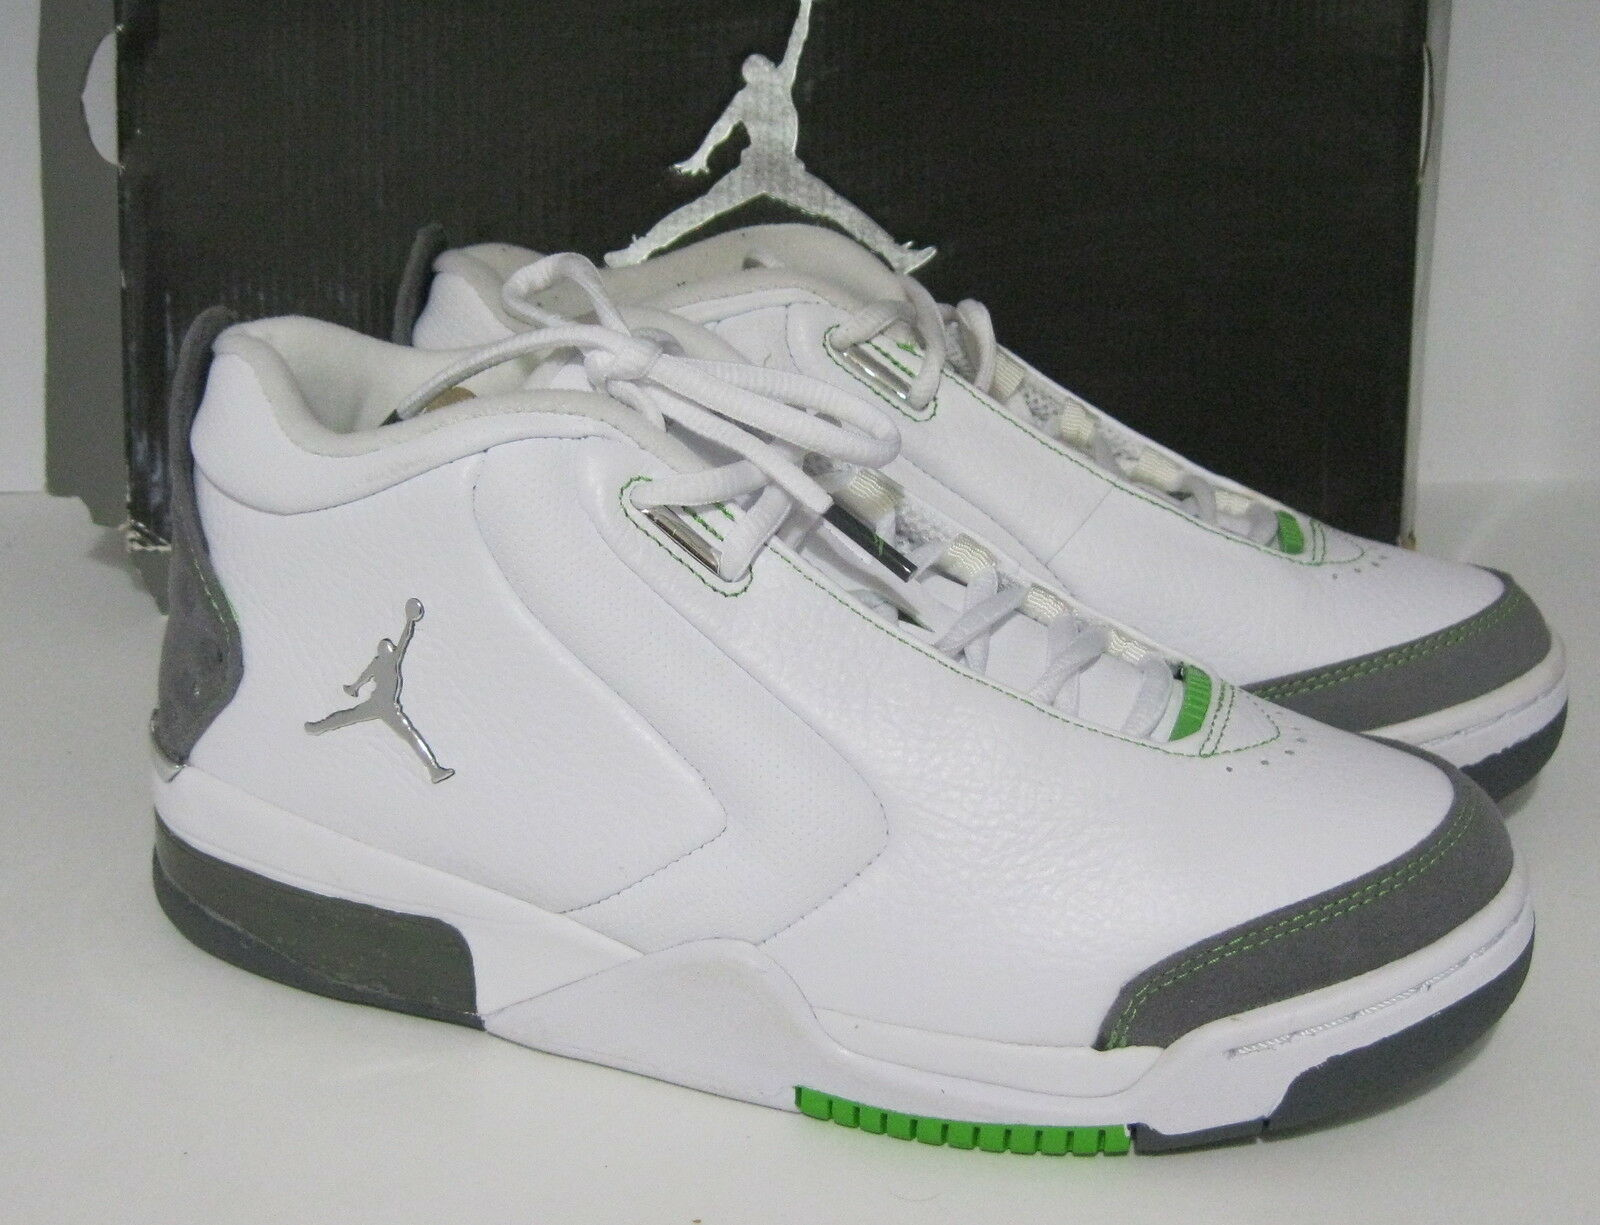 Air Jordan Big Fund Bean Blanco Metallic Plata Verde Bean Fund 310003-114 comodo el modelo mas vendido de la marca 74c5b4